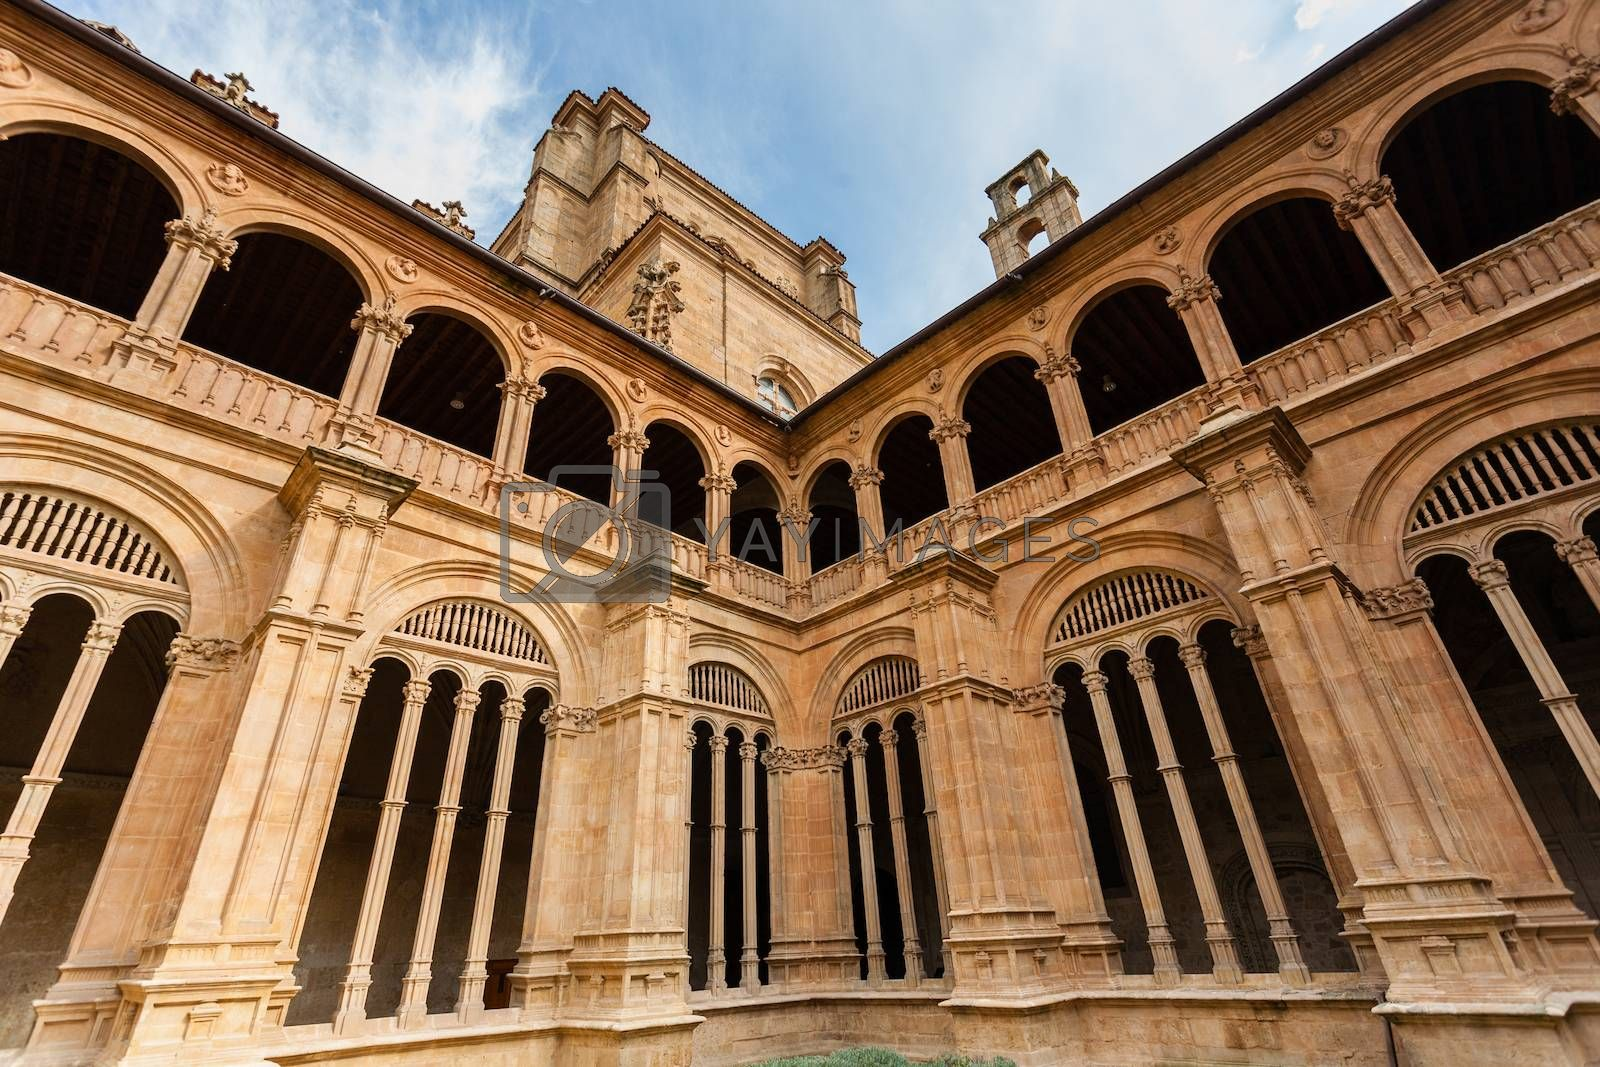 Detail view of lower and upper archery of the cloister from San Esteban dominican convent in Salamanca Spain